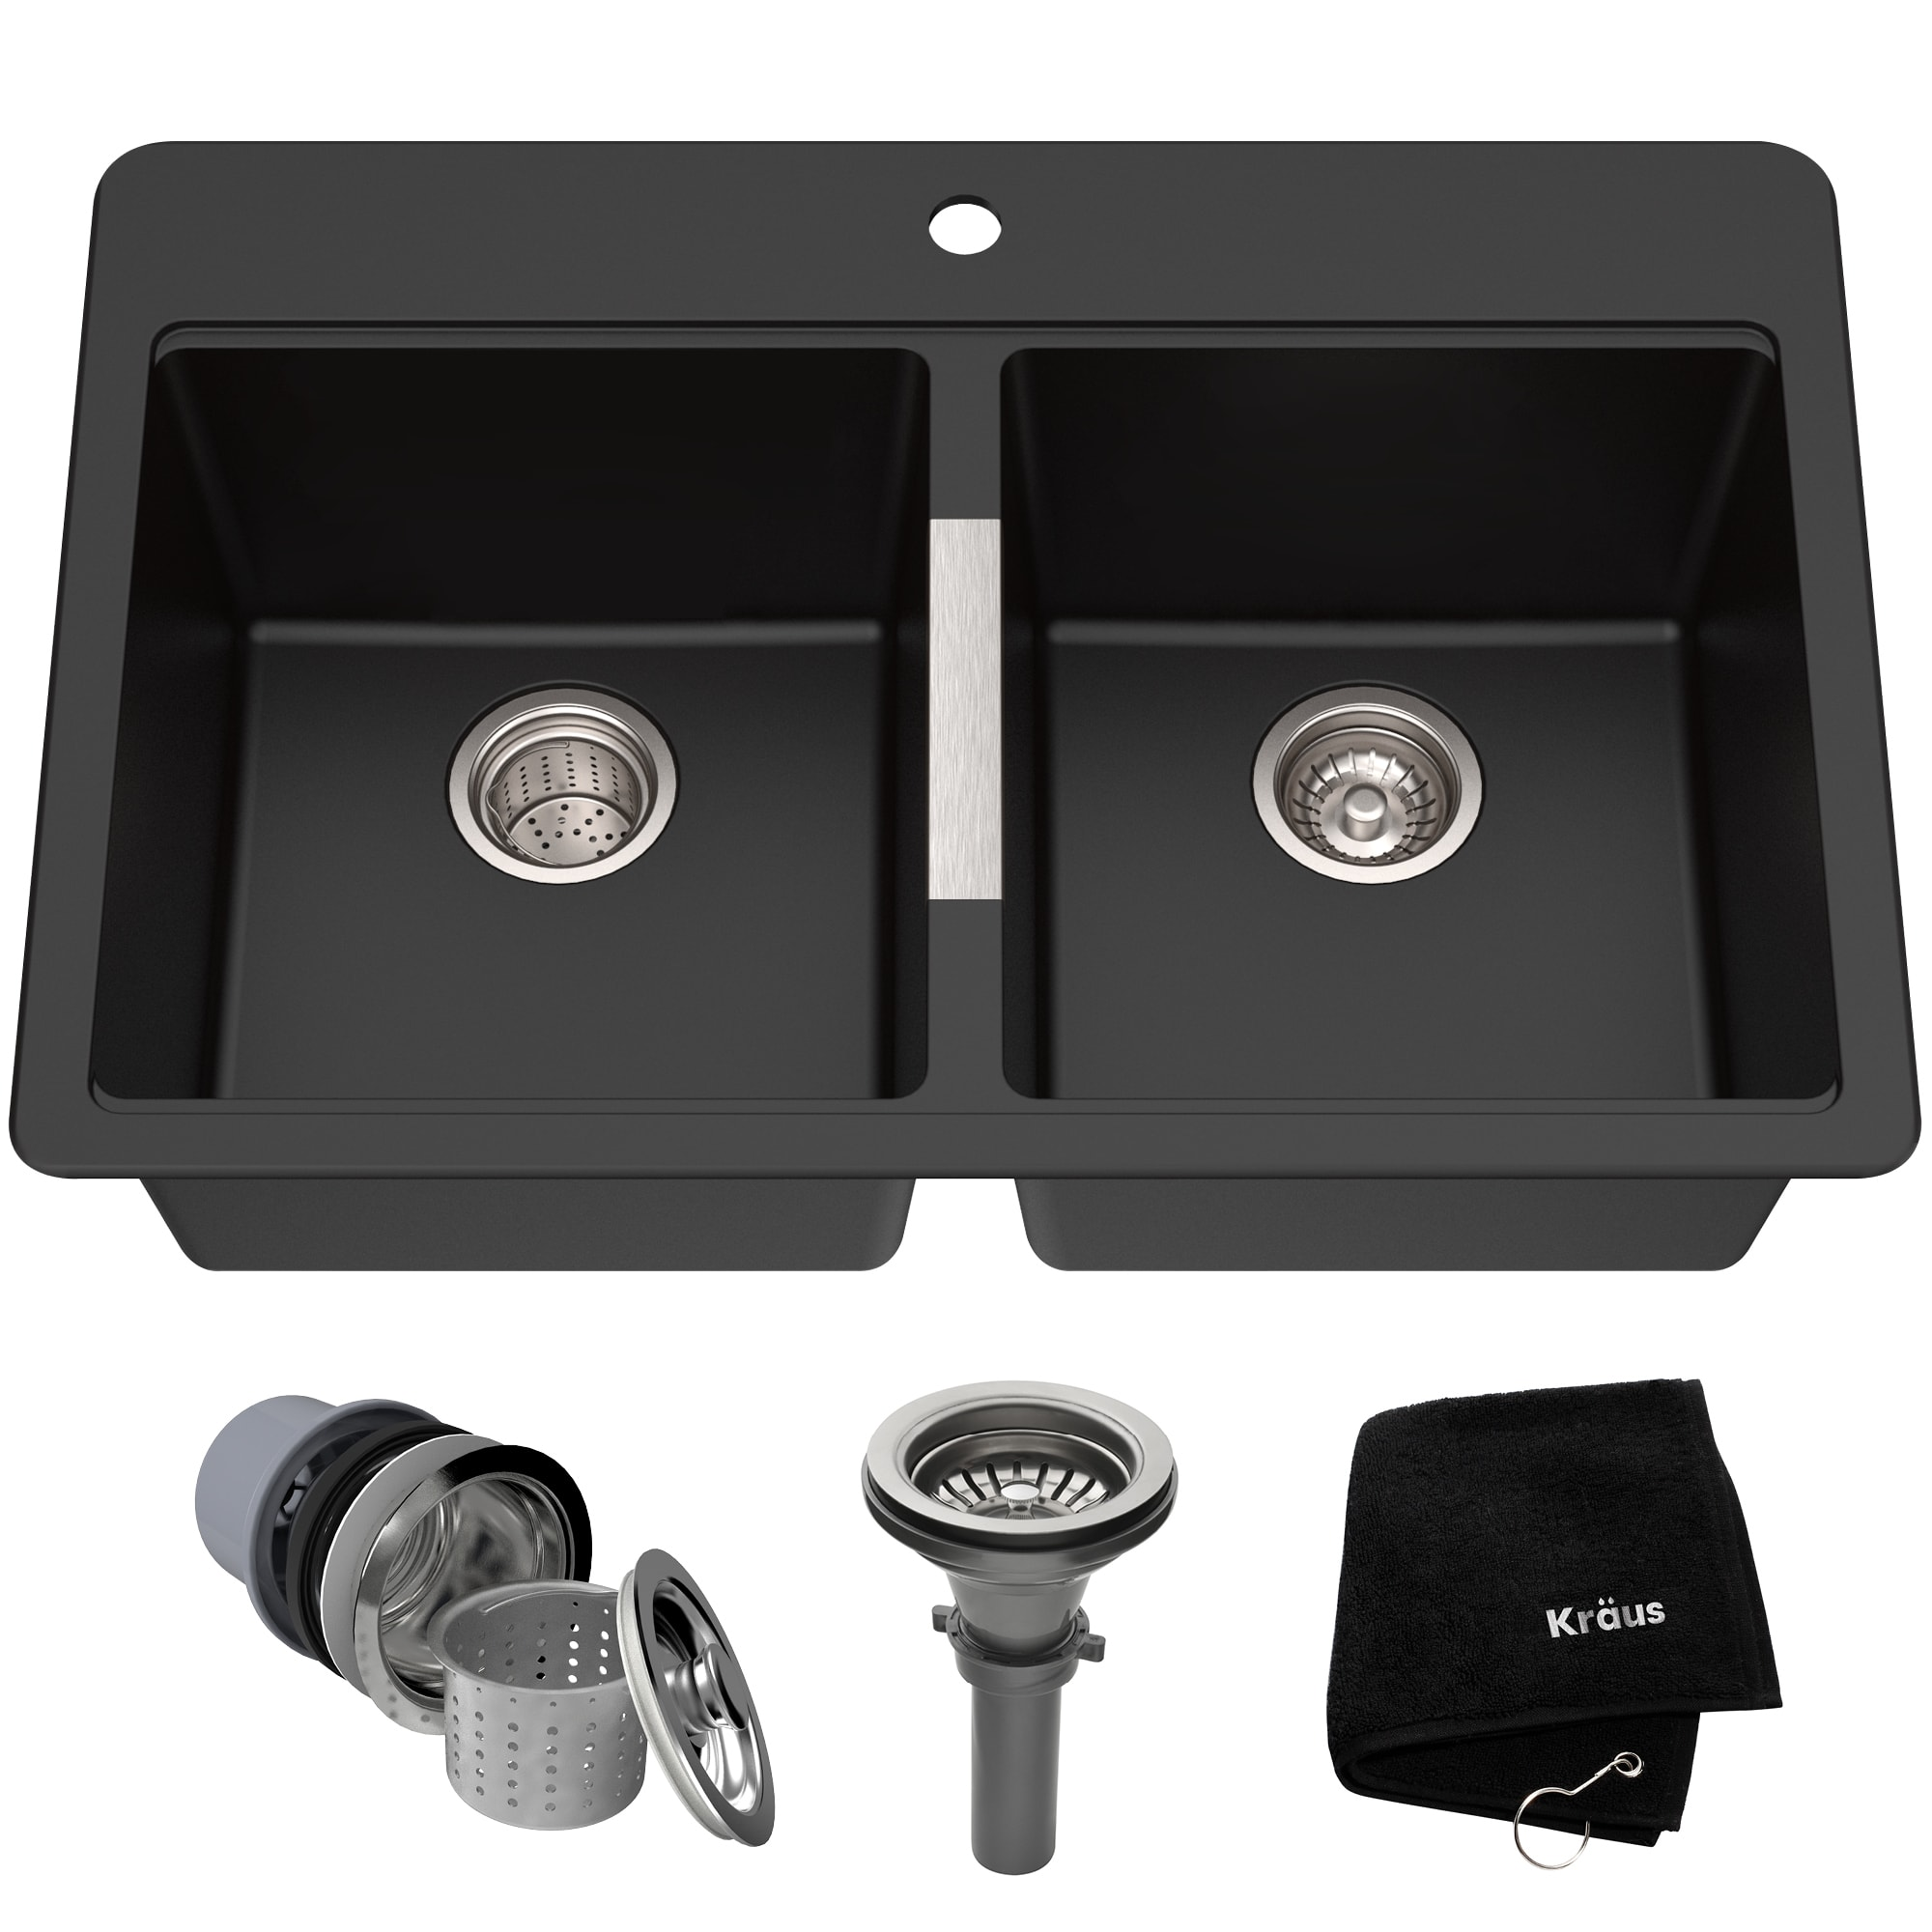 Kraus Kgd 433b Black Onyx 33 Double Basin Dual Mount Drop In Or Undermount Granite Composite Kitchen Sink With 50 50 Split Faucet Com